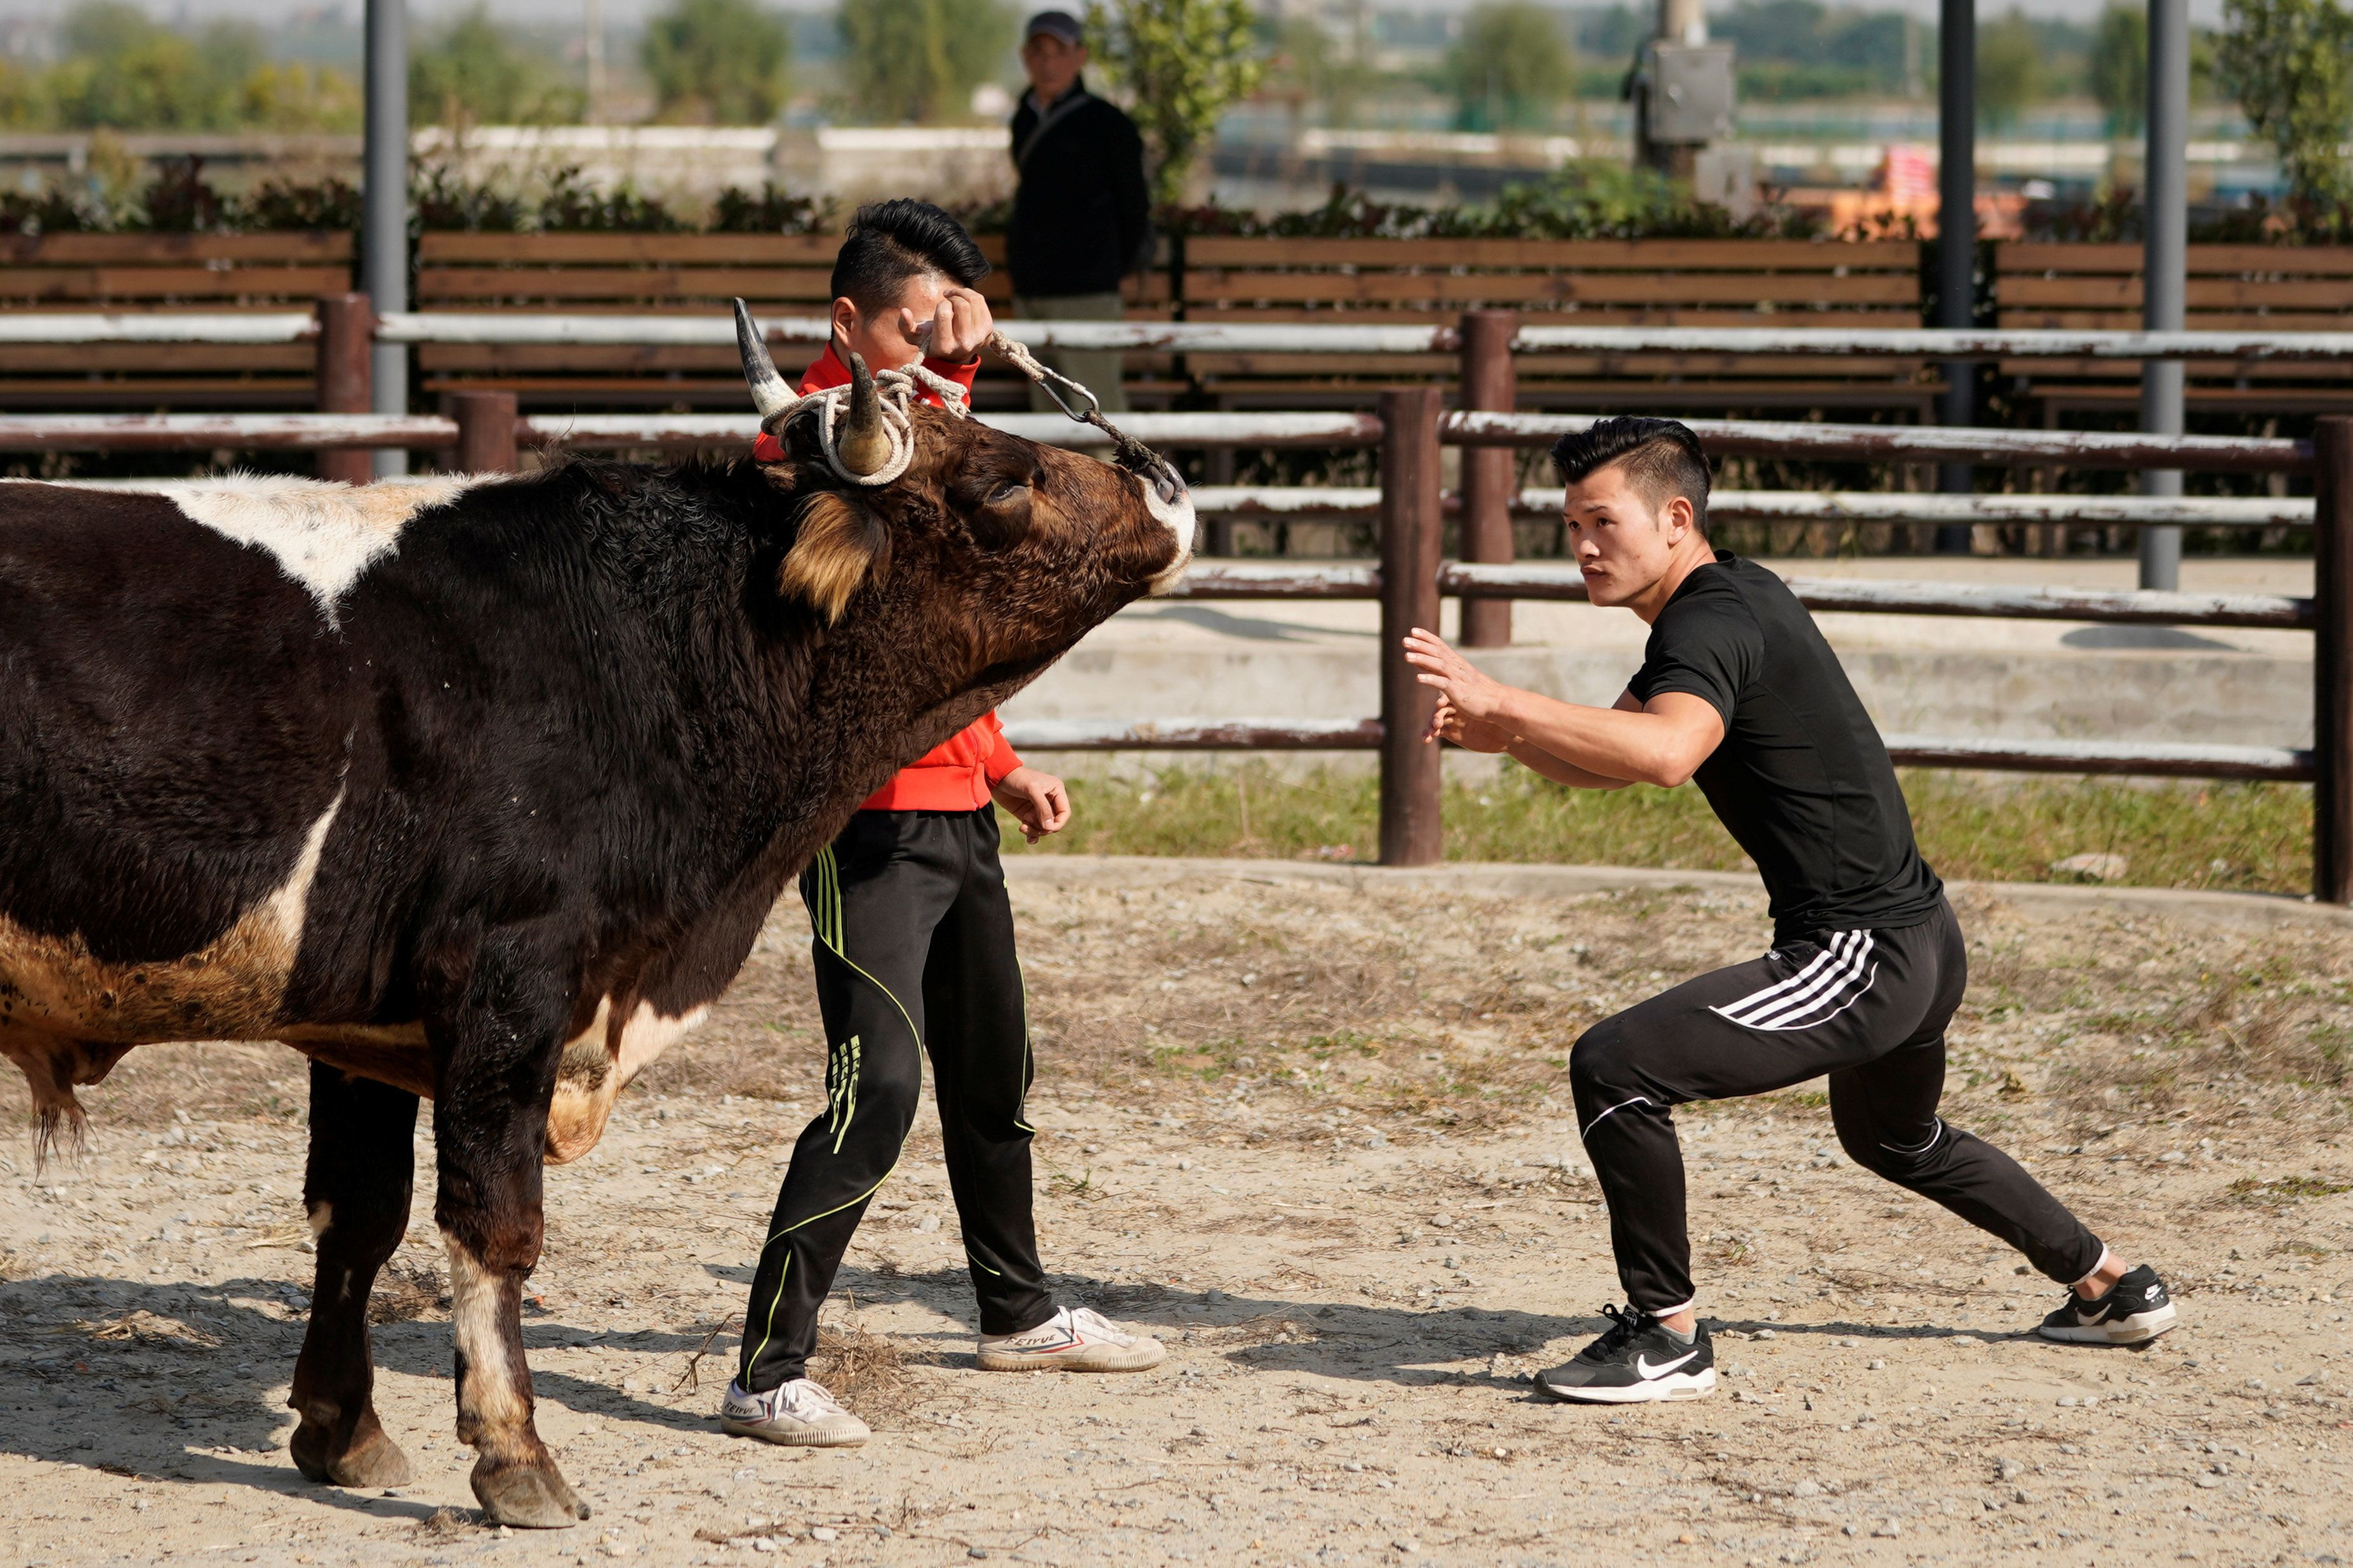 Bullfighter Ren Ruzhi, 24, fights with a bull during a practice session at the Haihua Kung-fu School in Jiaxing, Zhejiang province, China October 27, 2018. Picture taken October 27, 2018.  REUTERS/Aly Song